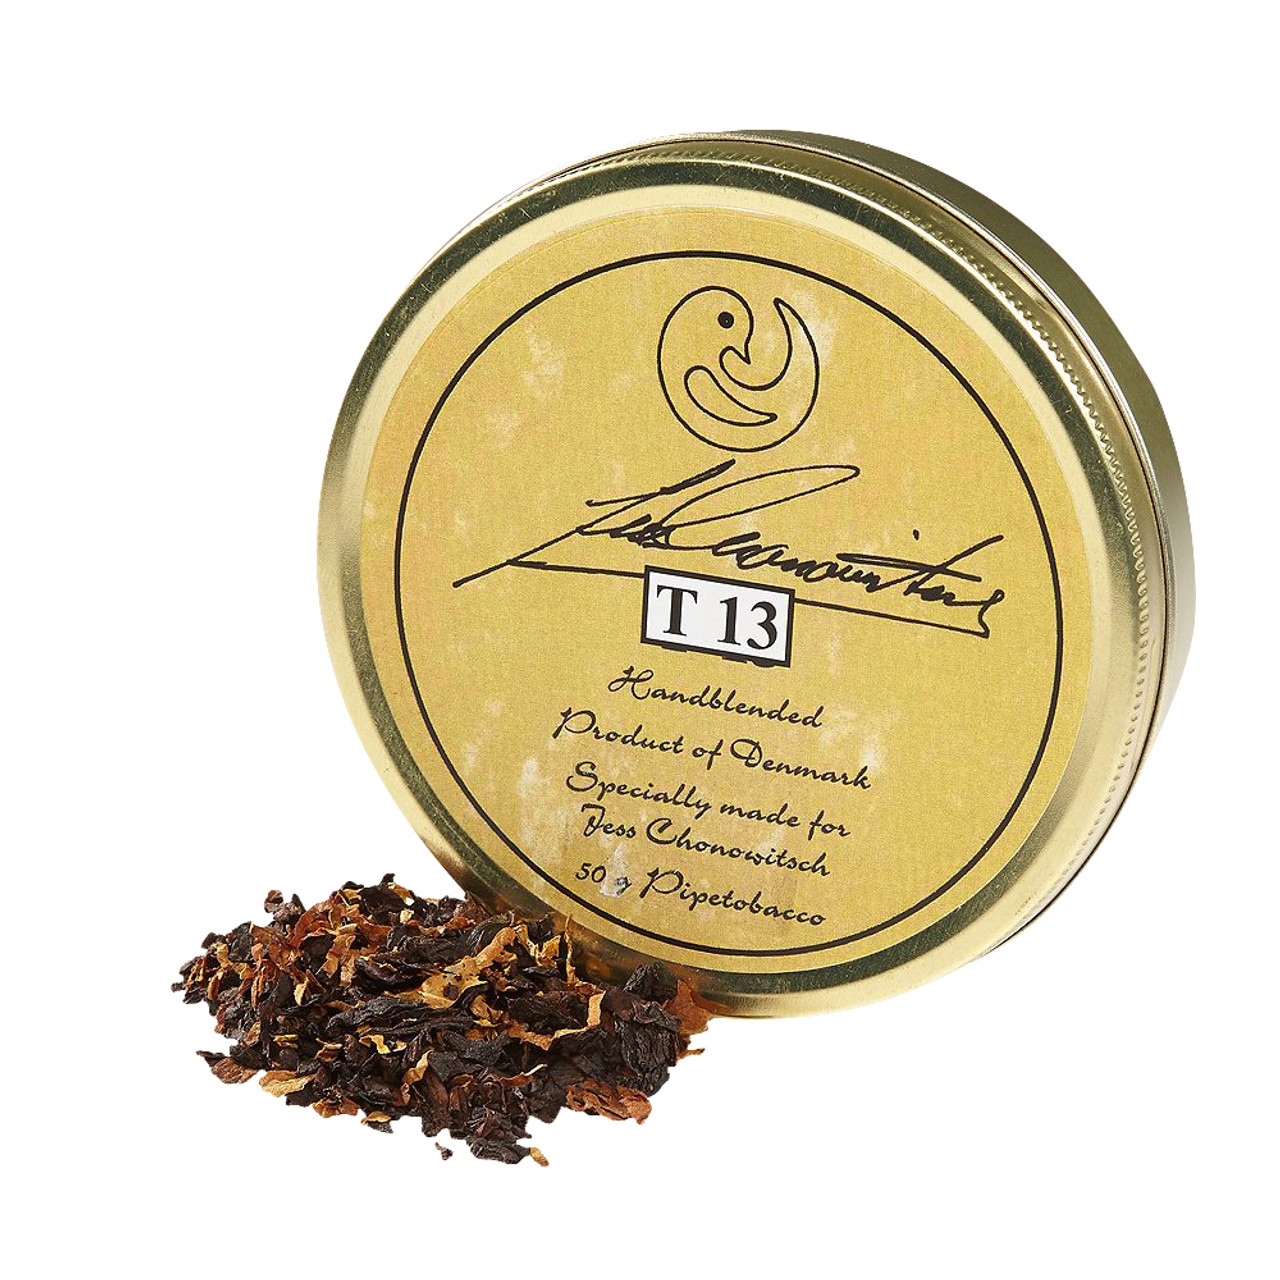 Chonowitsch T 13 Pipe Tobacco | 1.75 OZ TIN